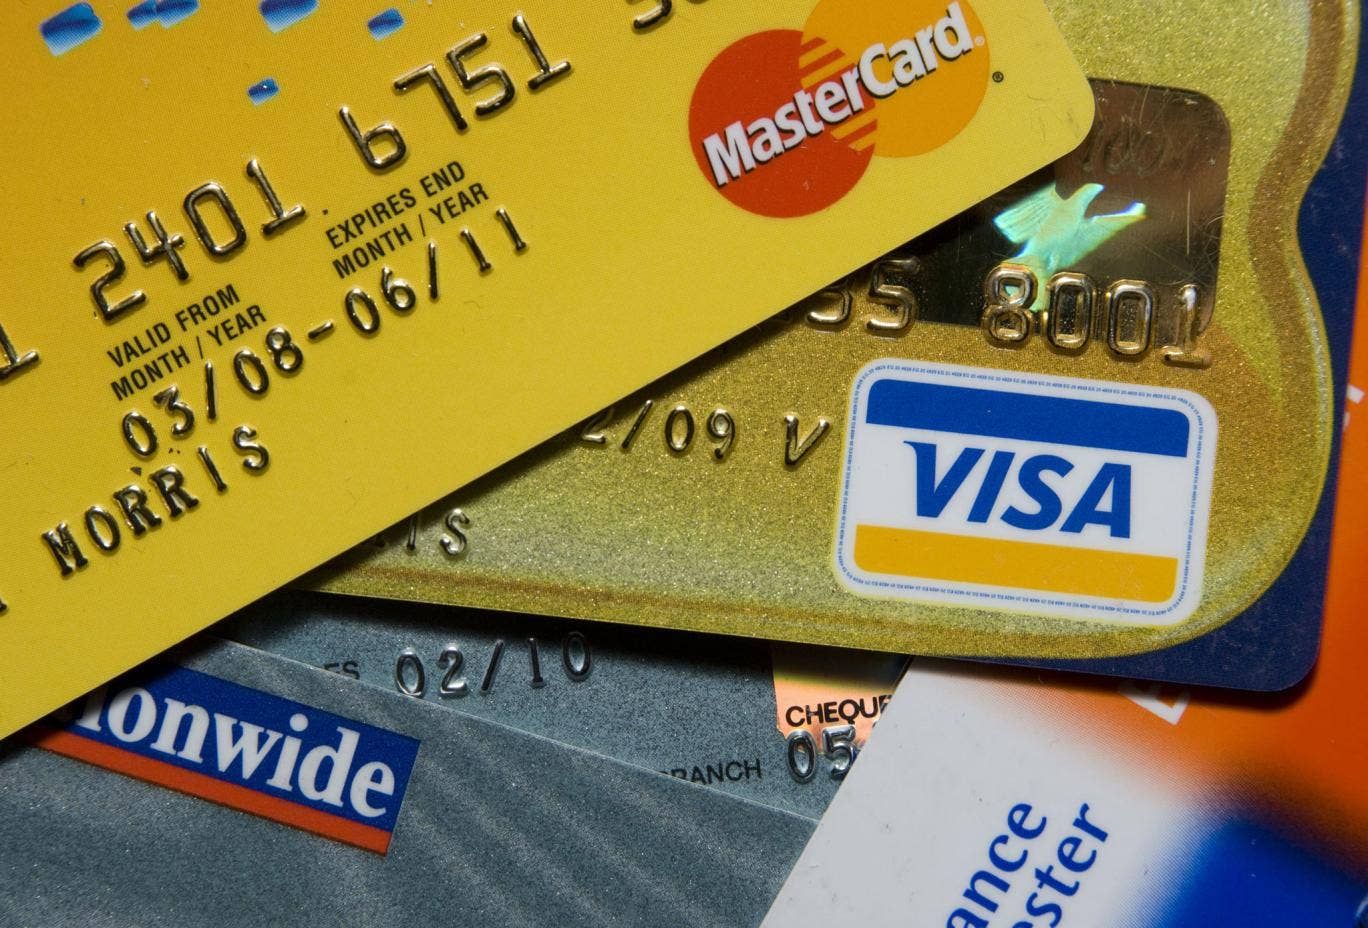 Card spending has more than doubled over the last decade